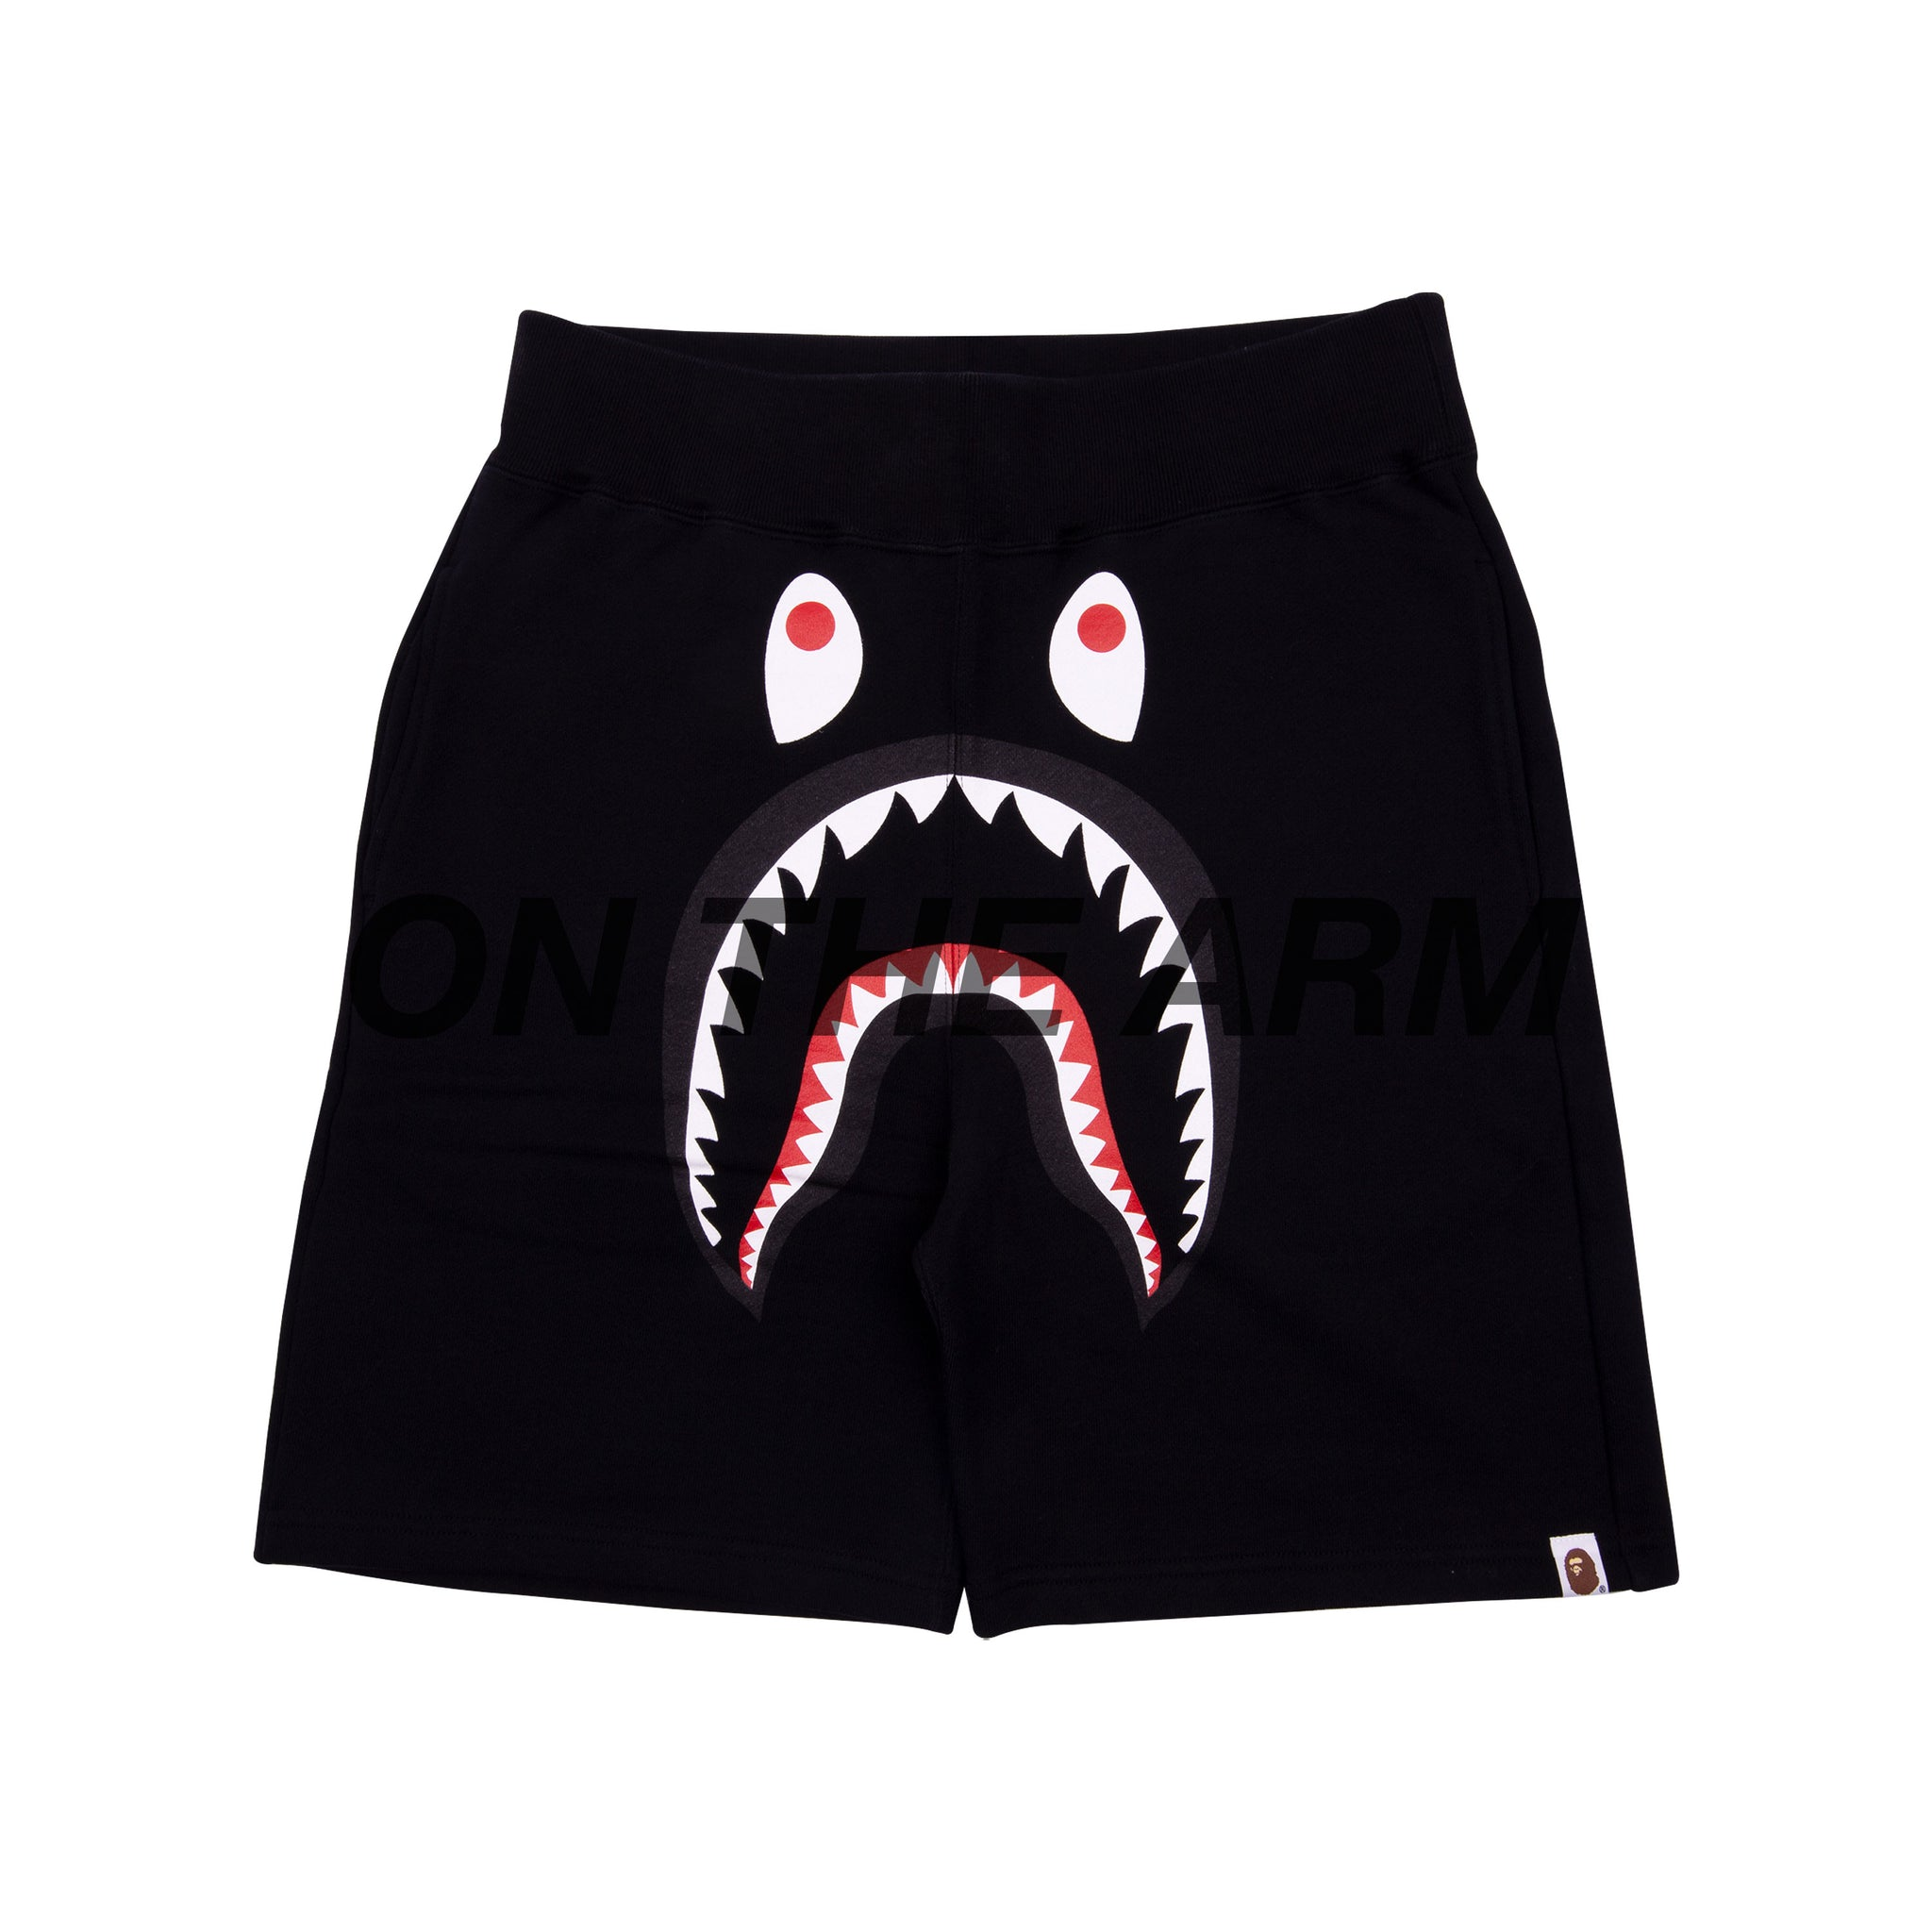 Bape Black Shark Shorts